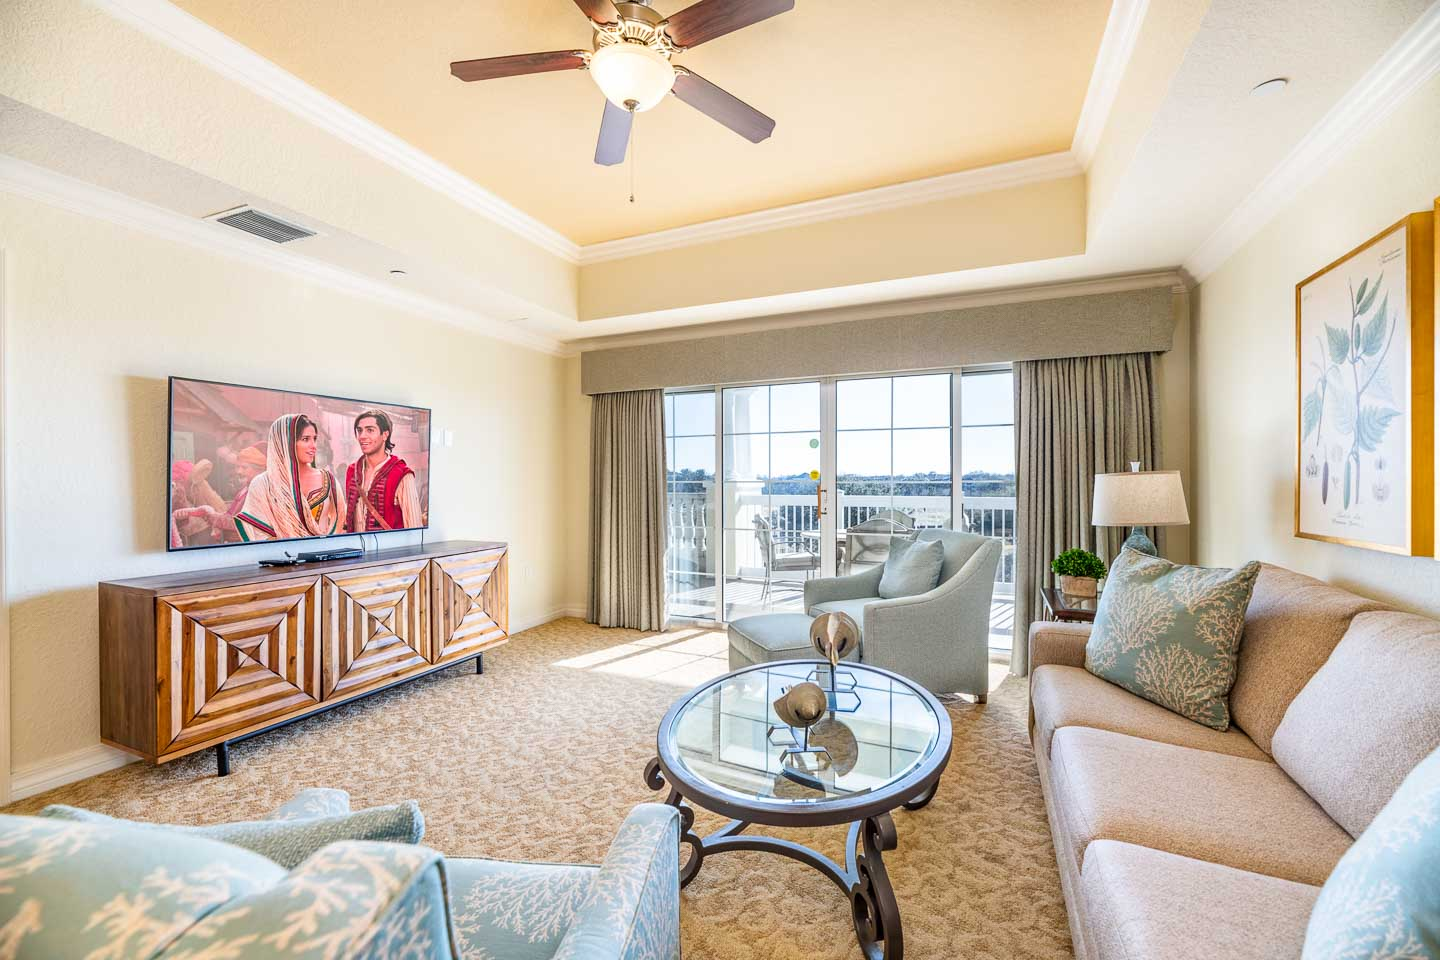 The Welcoming Golf Condo-195347